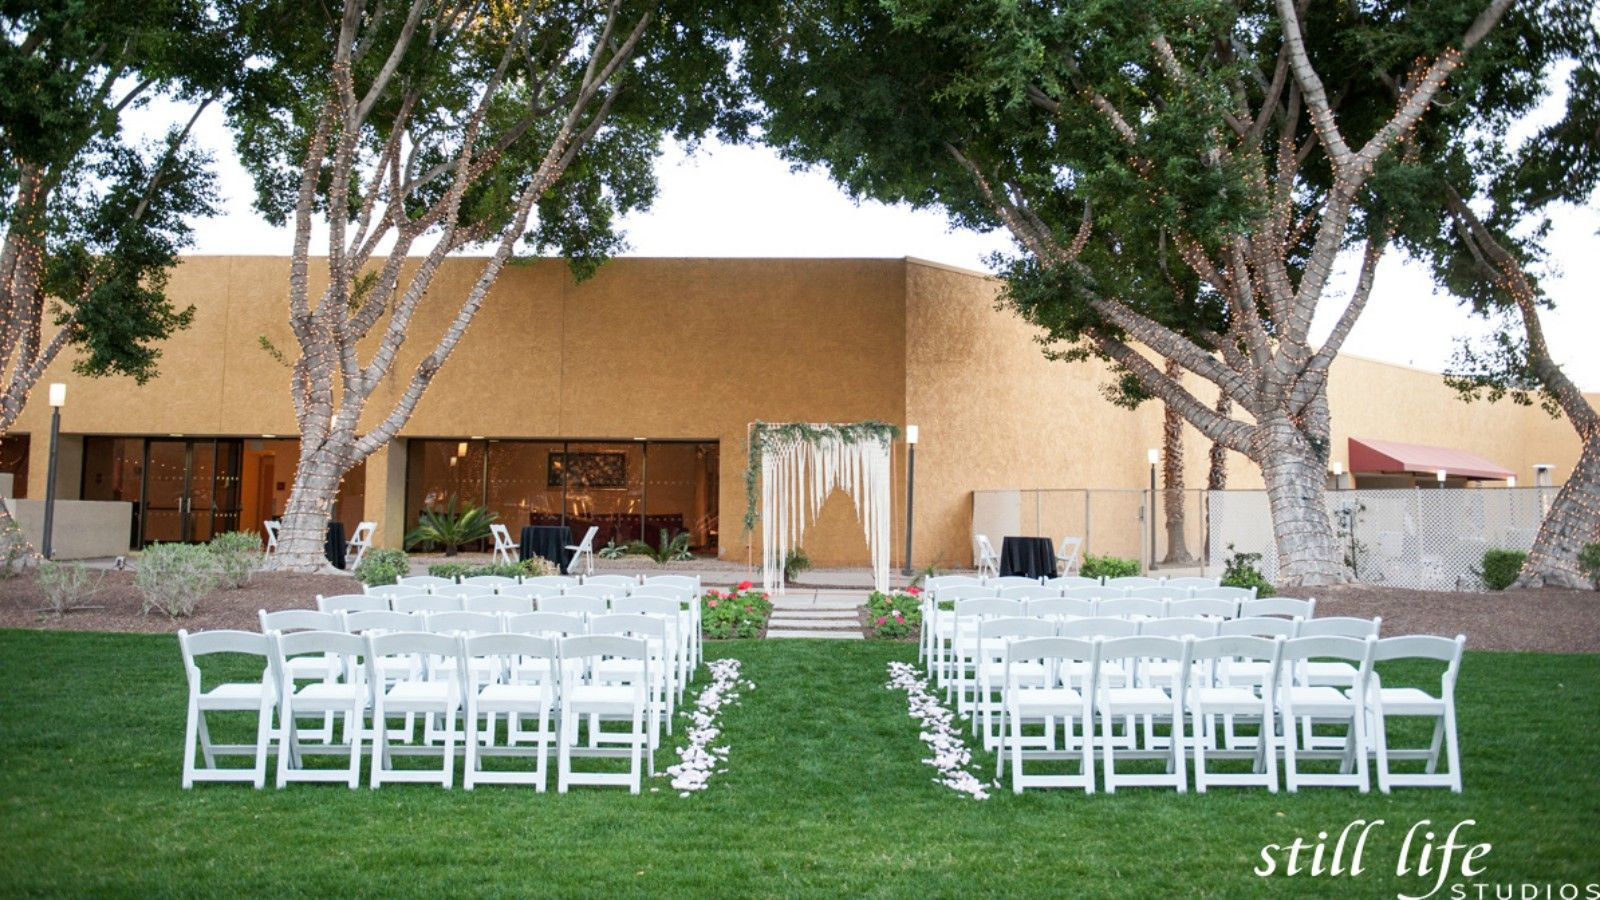 Wedding Venue in Phoenix - Courtyard Space